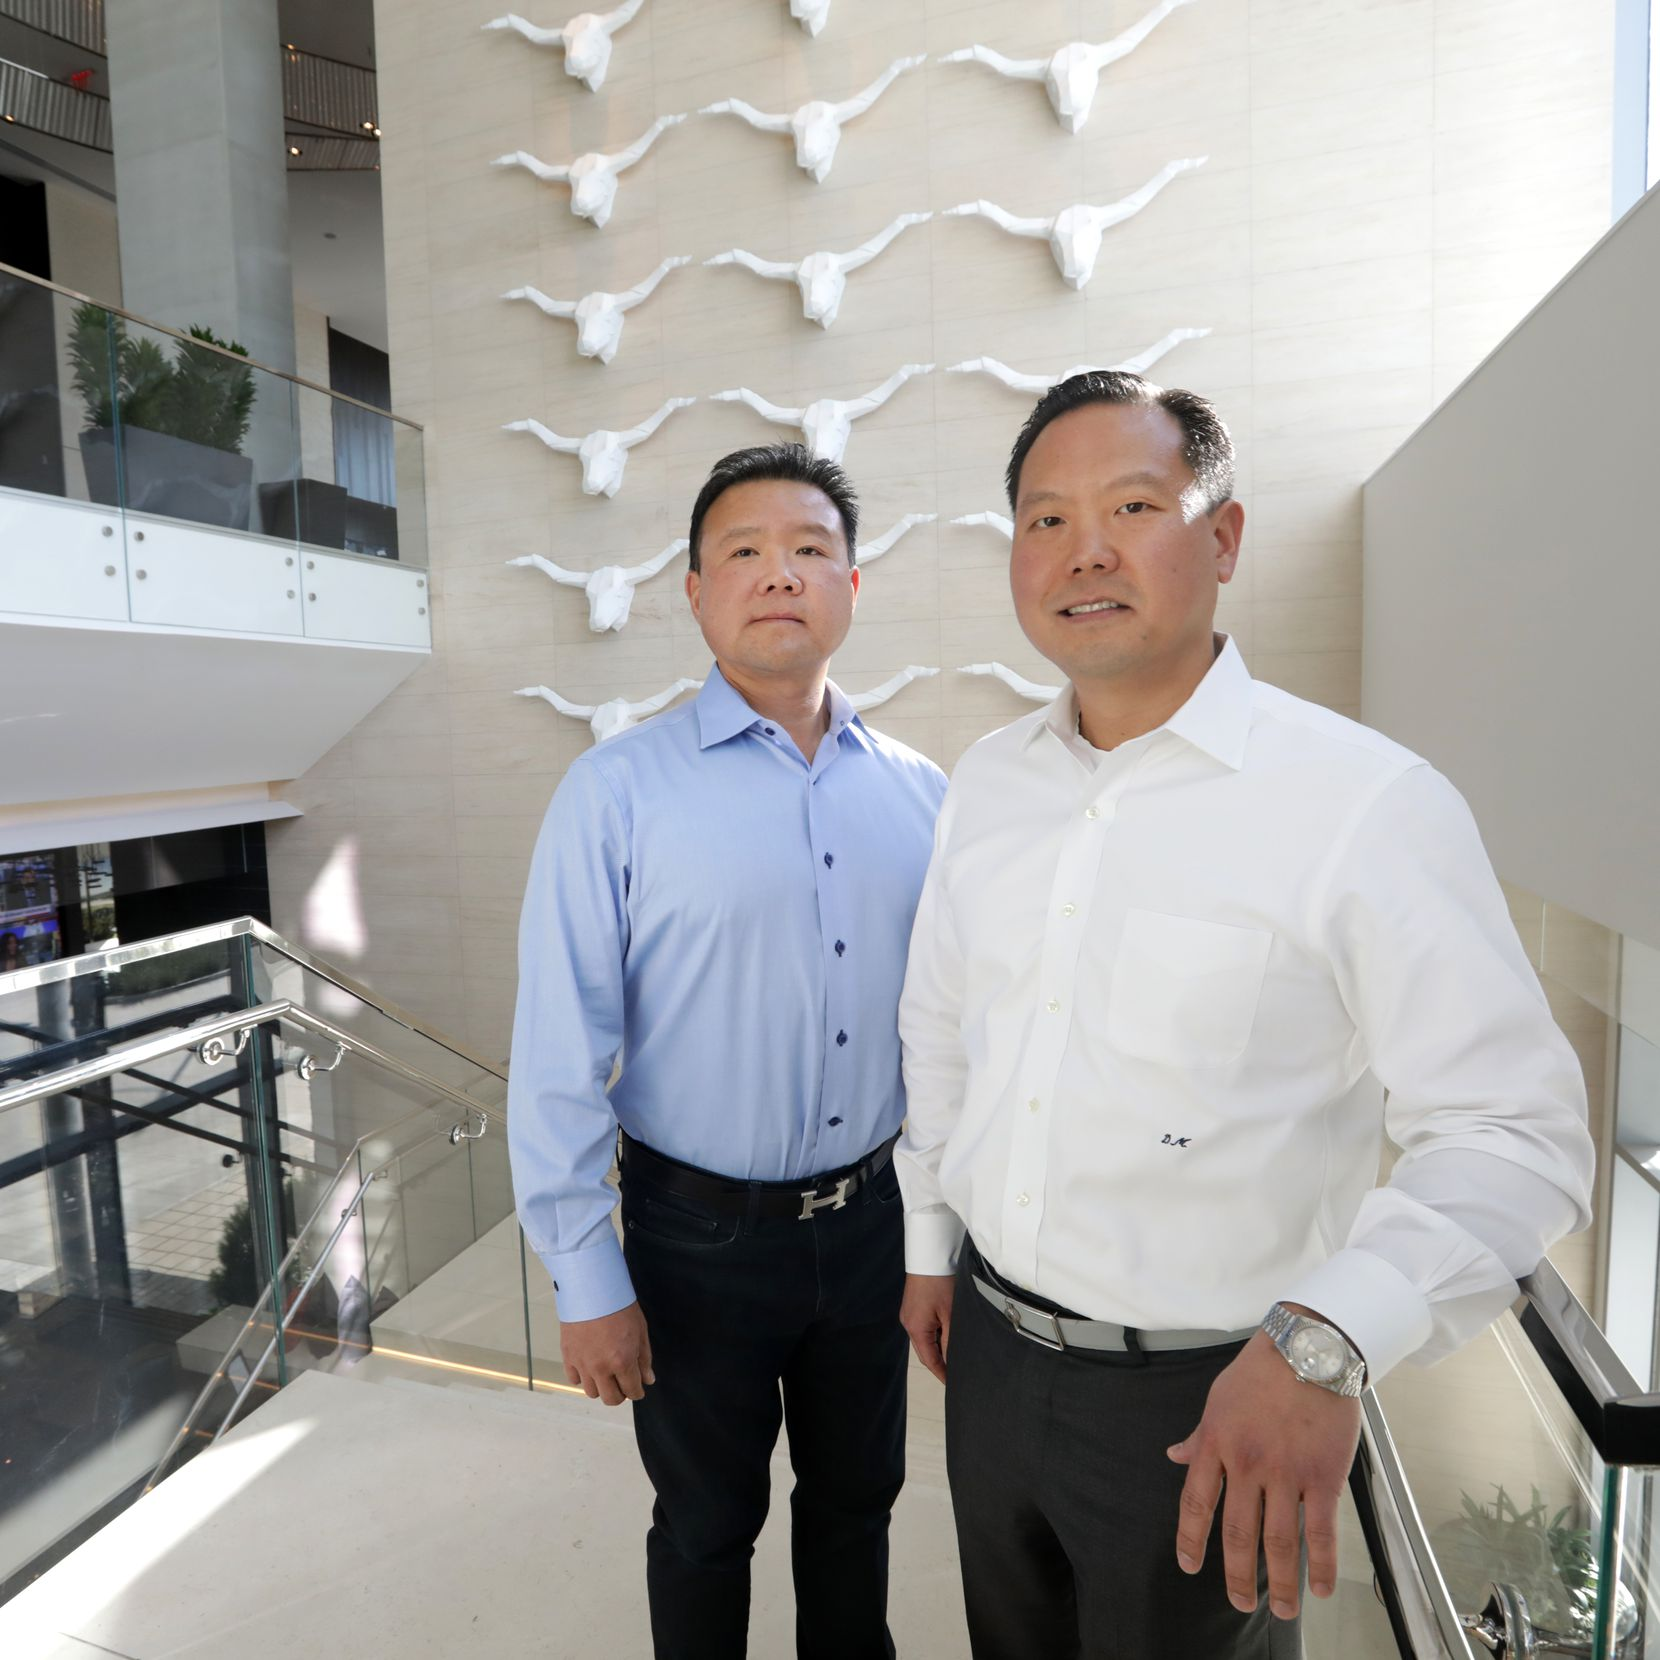 Sam Moon, left, and Daniel Moon are shown at the Renaissance Hotel in Plano.